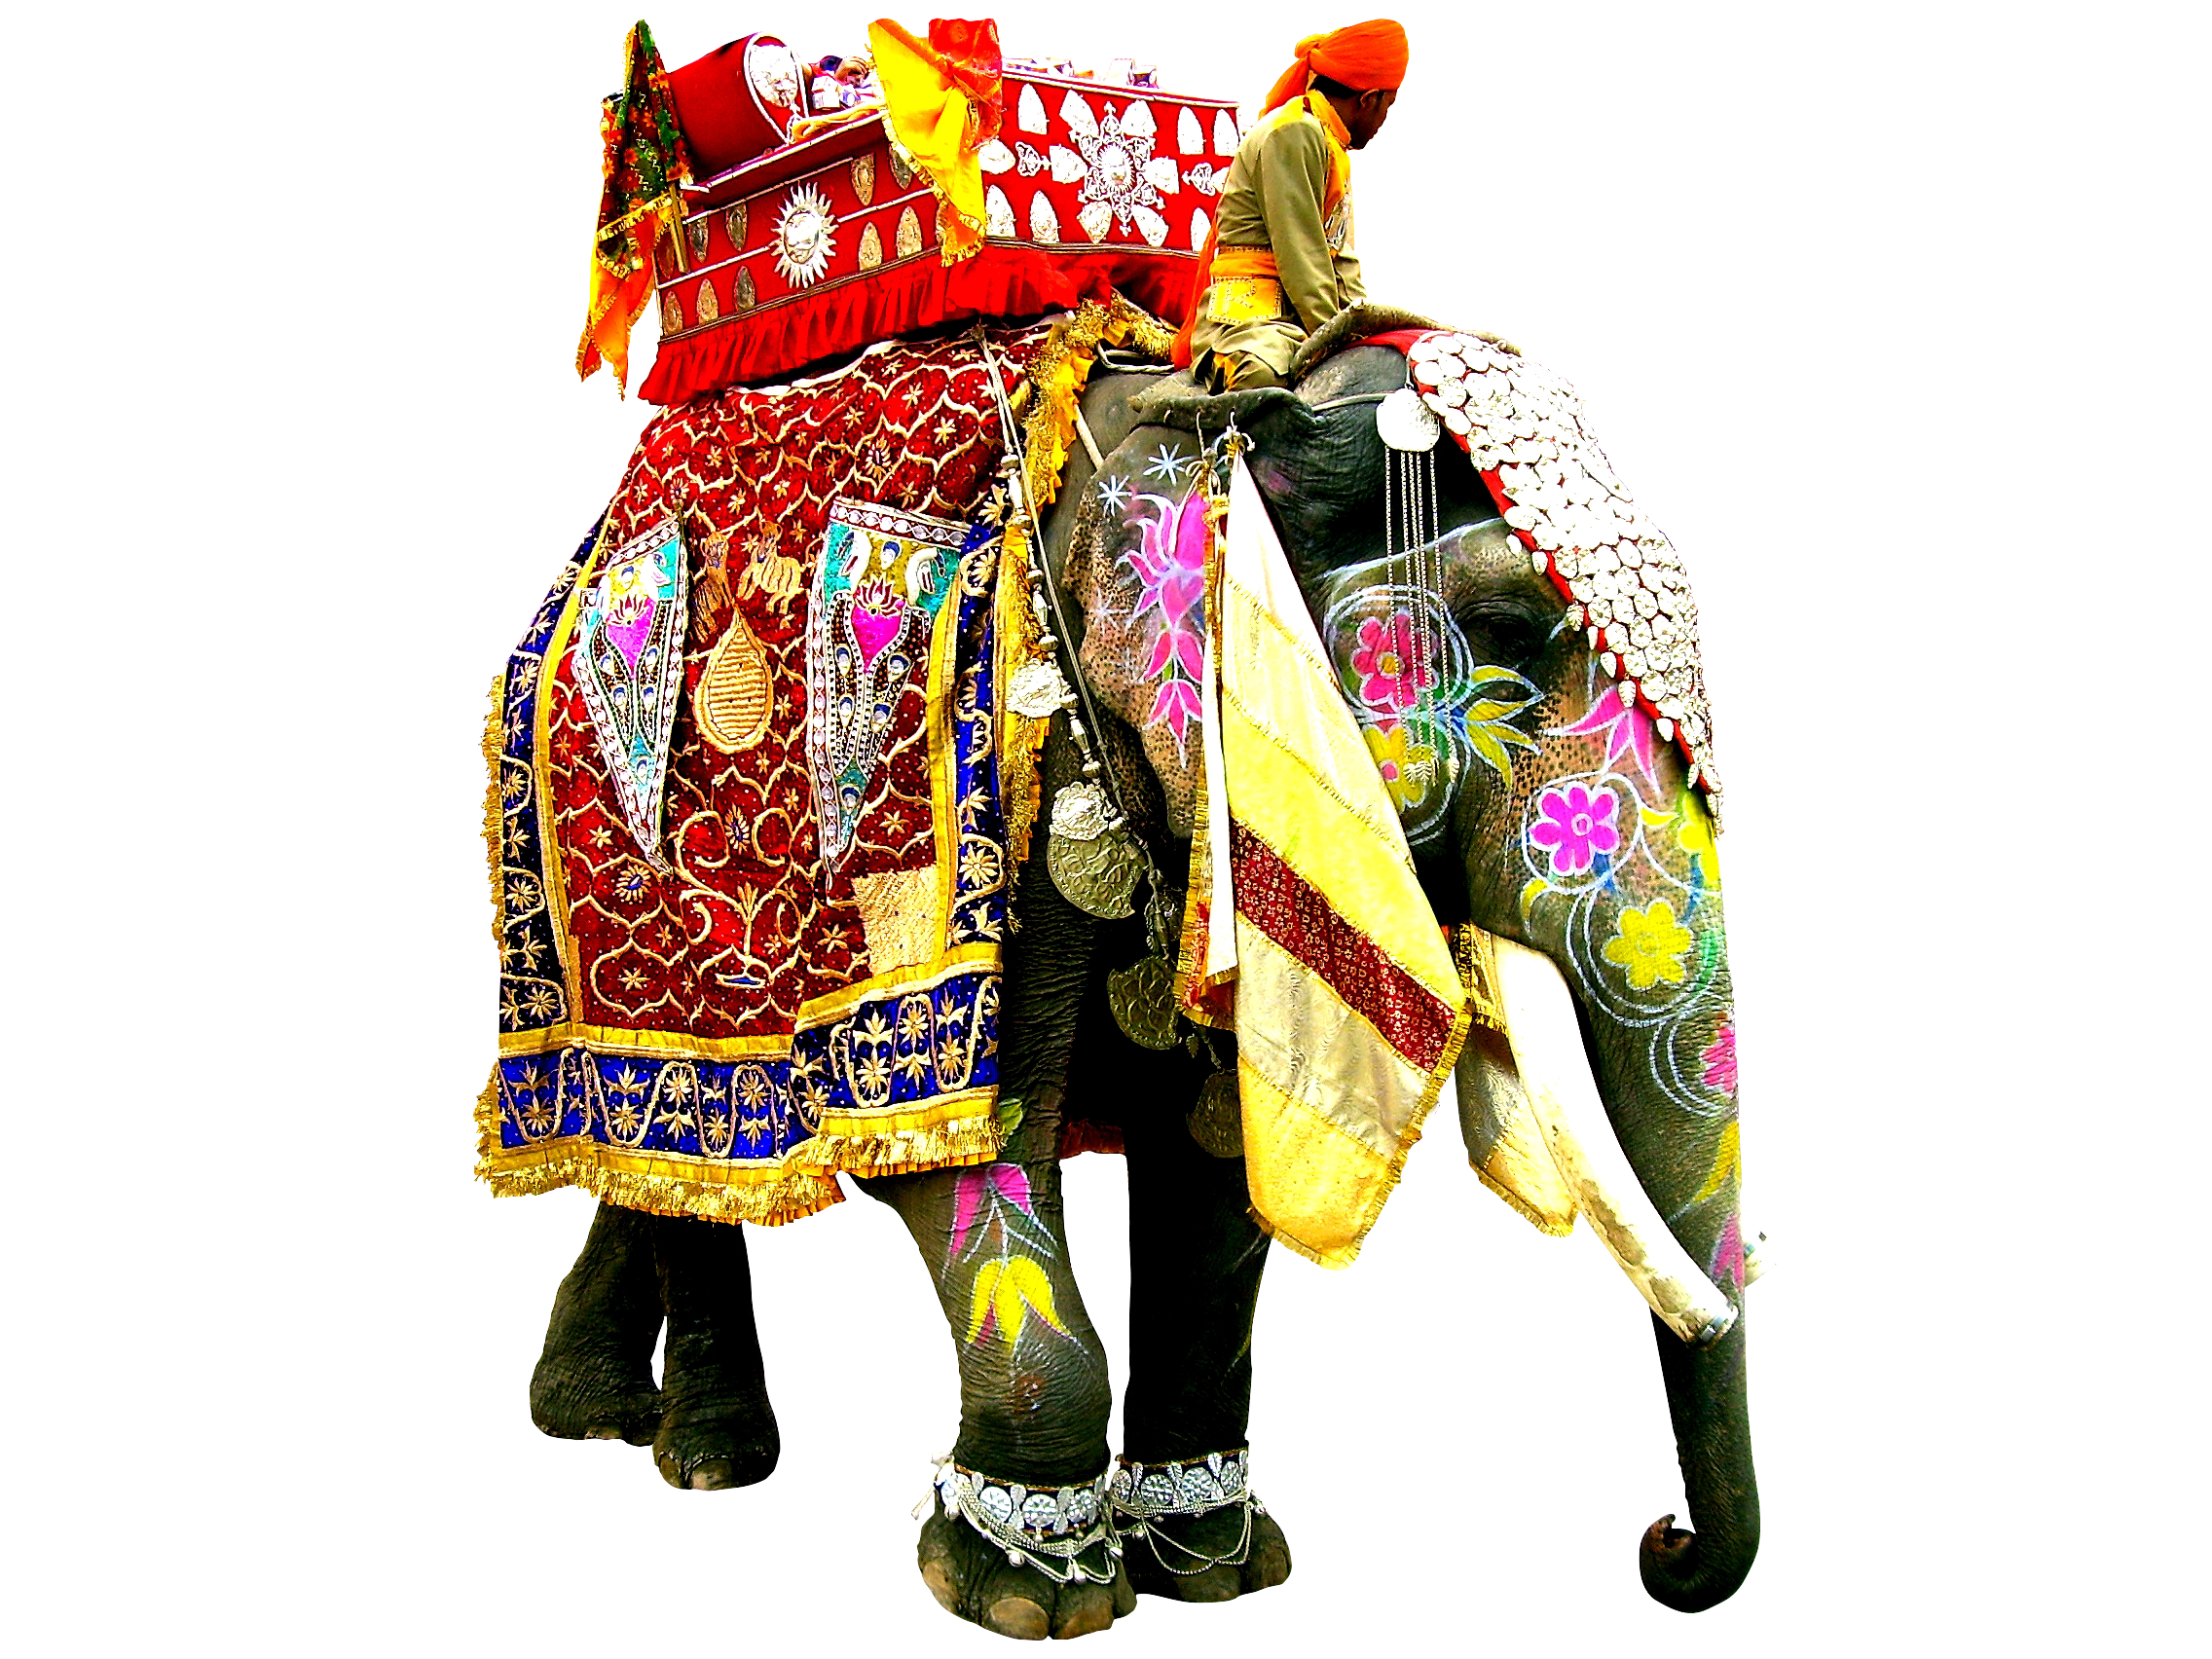 Decorated Indian Elephant Png Hq By Alistairkidd On Deviantart Please remember to share it with your. decorated indian elephant png hq by